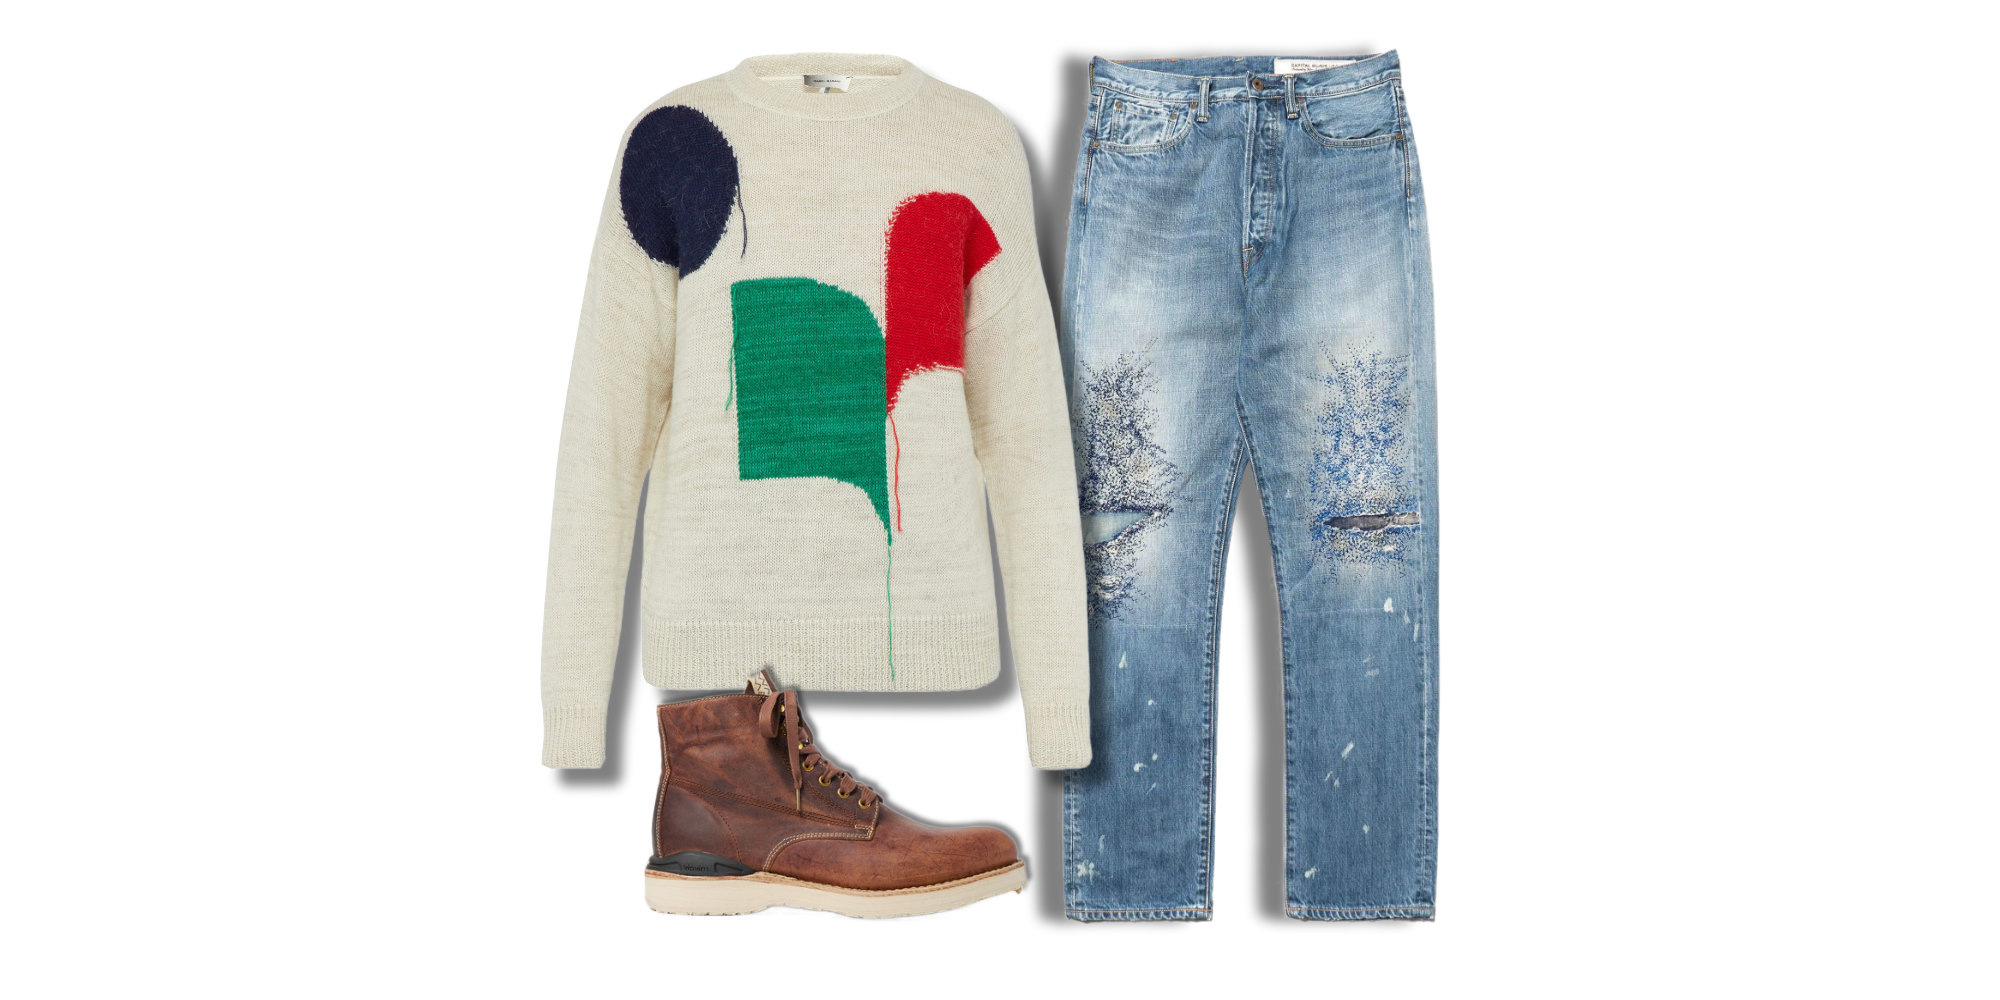 wear_this_isabel_marant_knit_and_more_banner.jpg